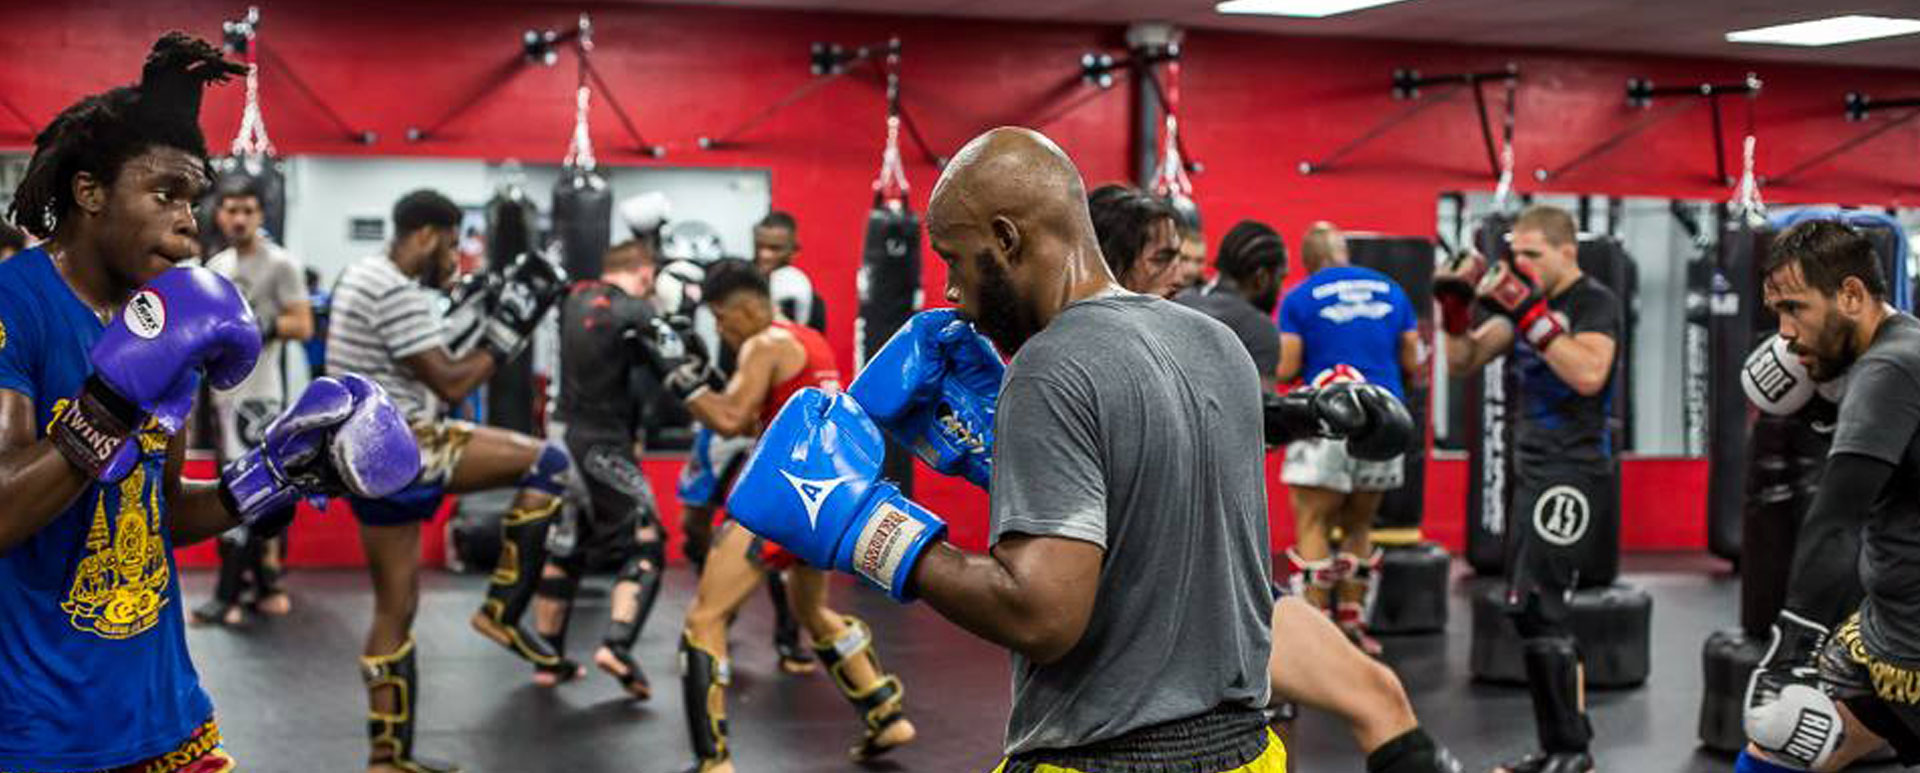 Muay Thai Classes in Houston, TX